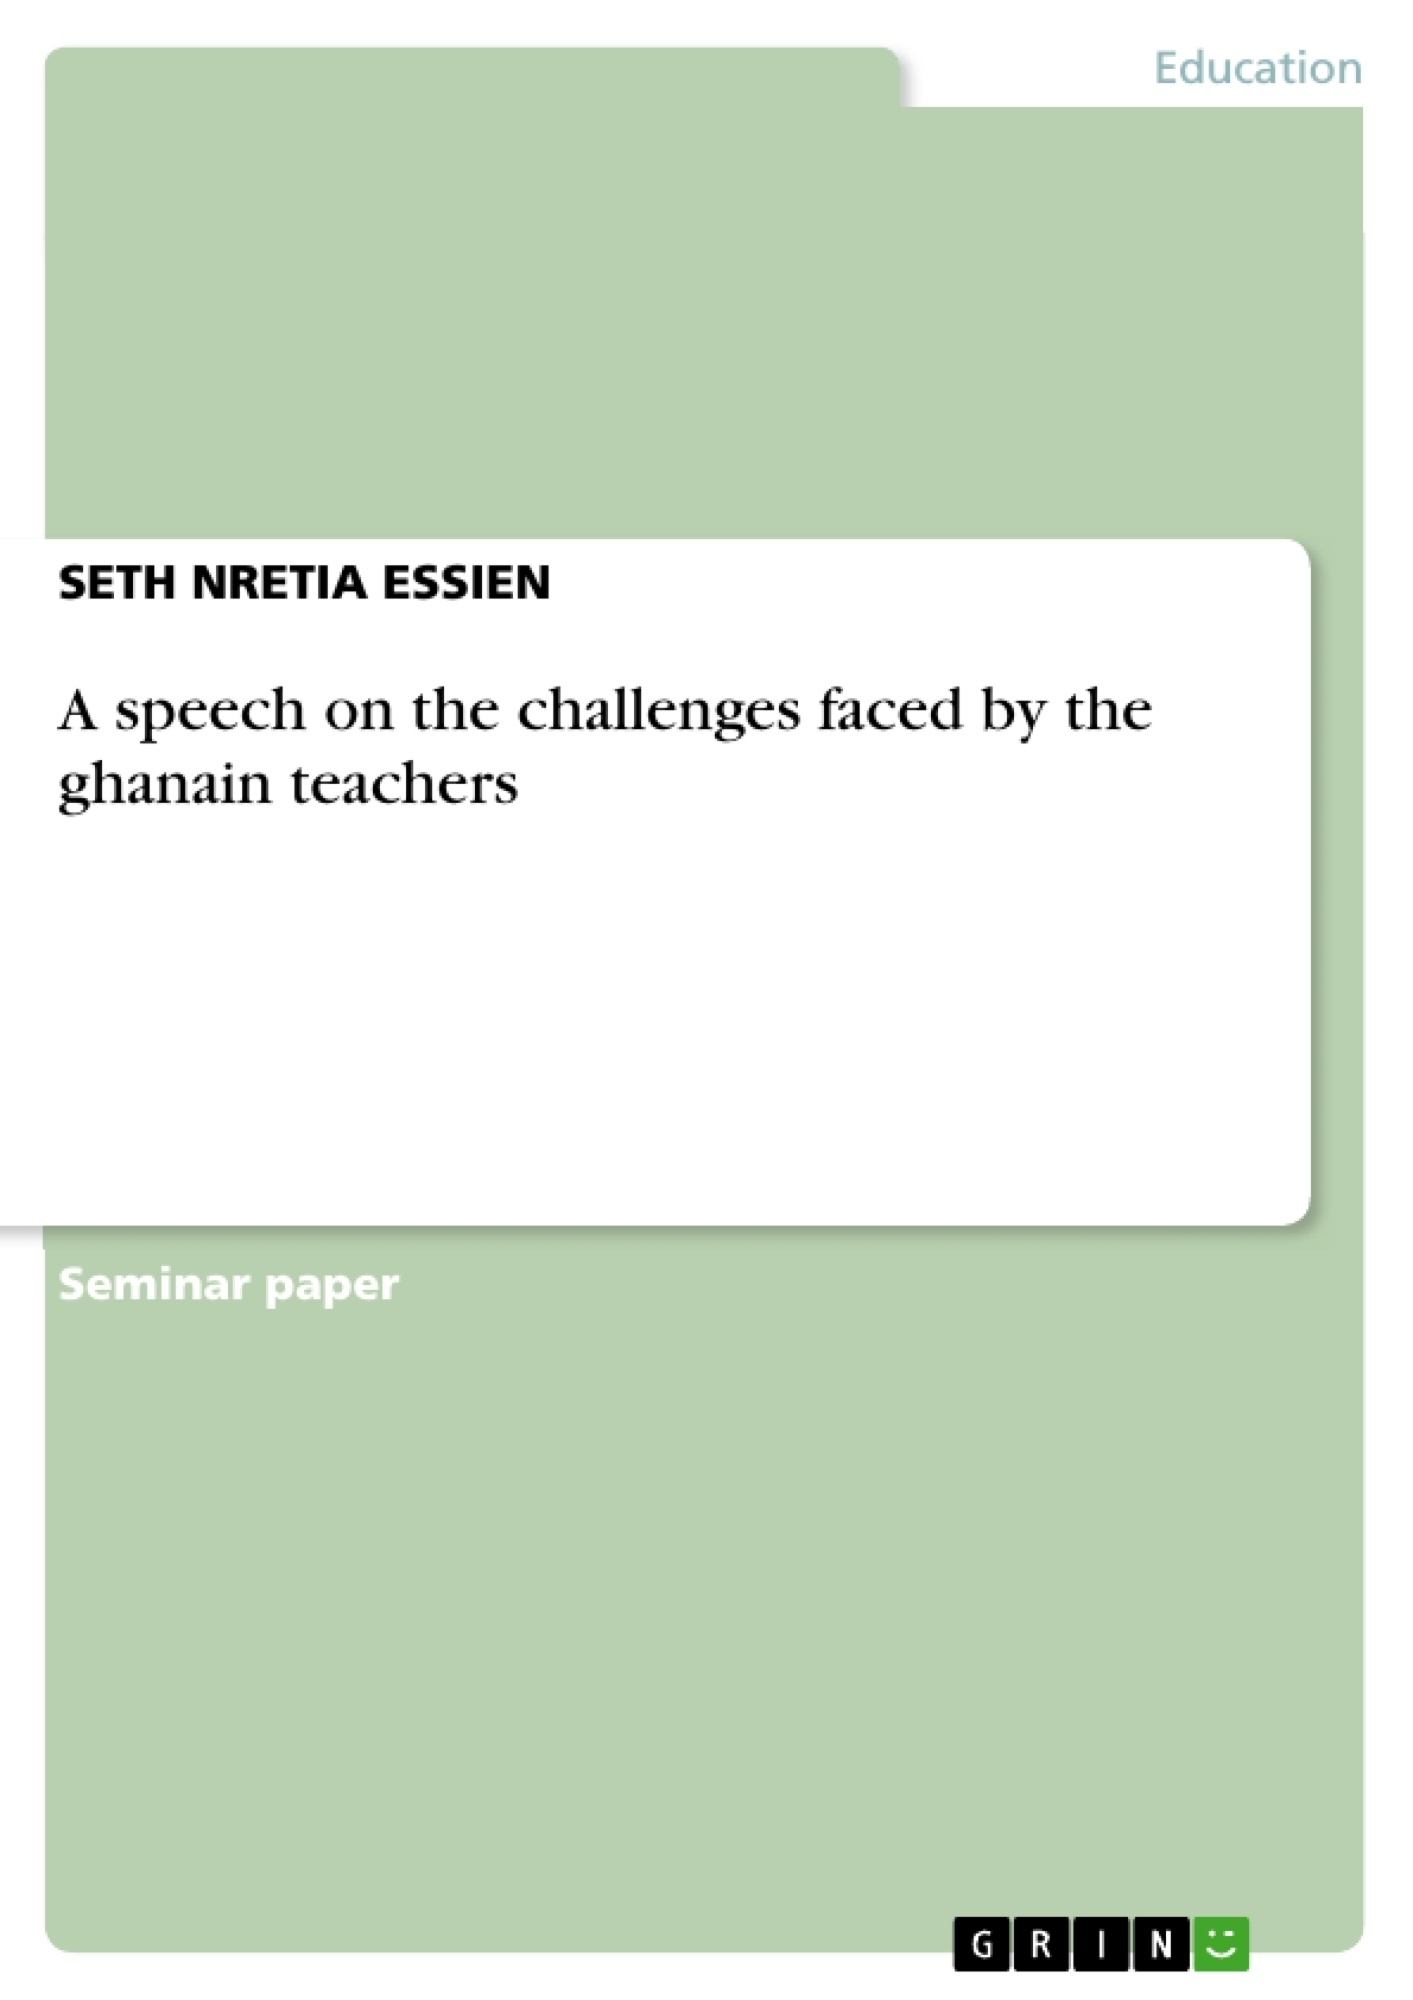 Title: A speech on the challenges faced by the ghanain teachers